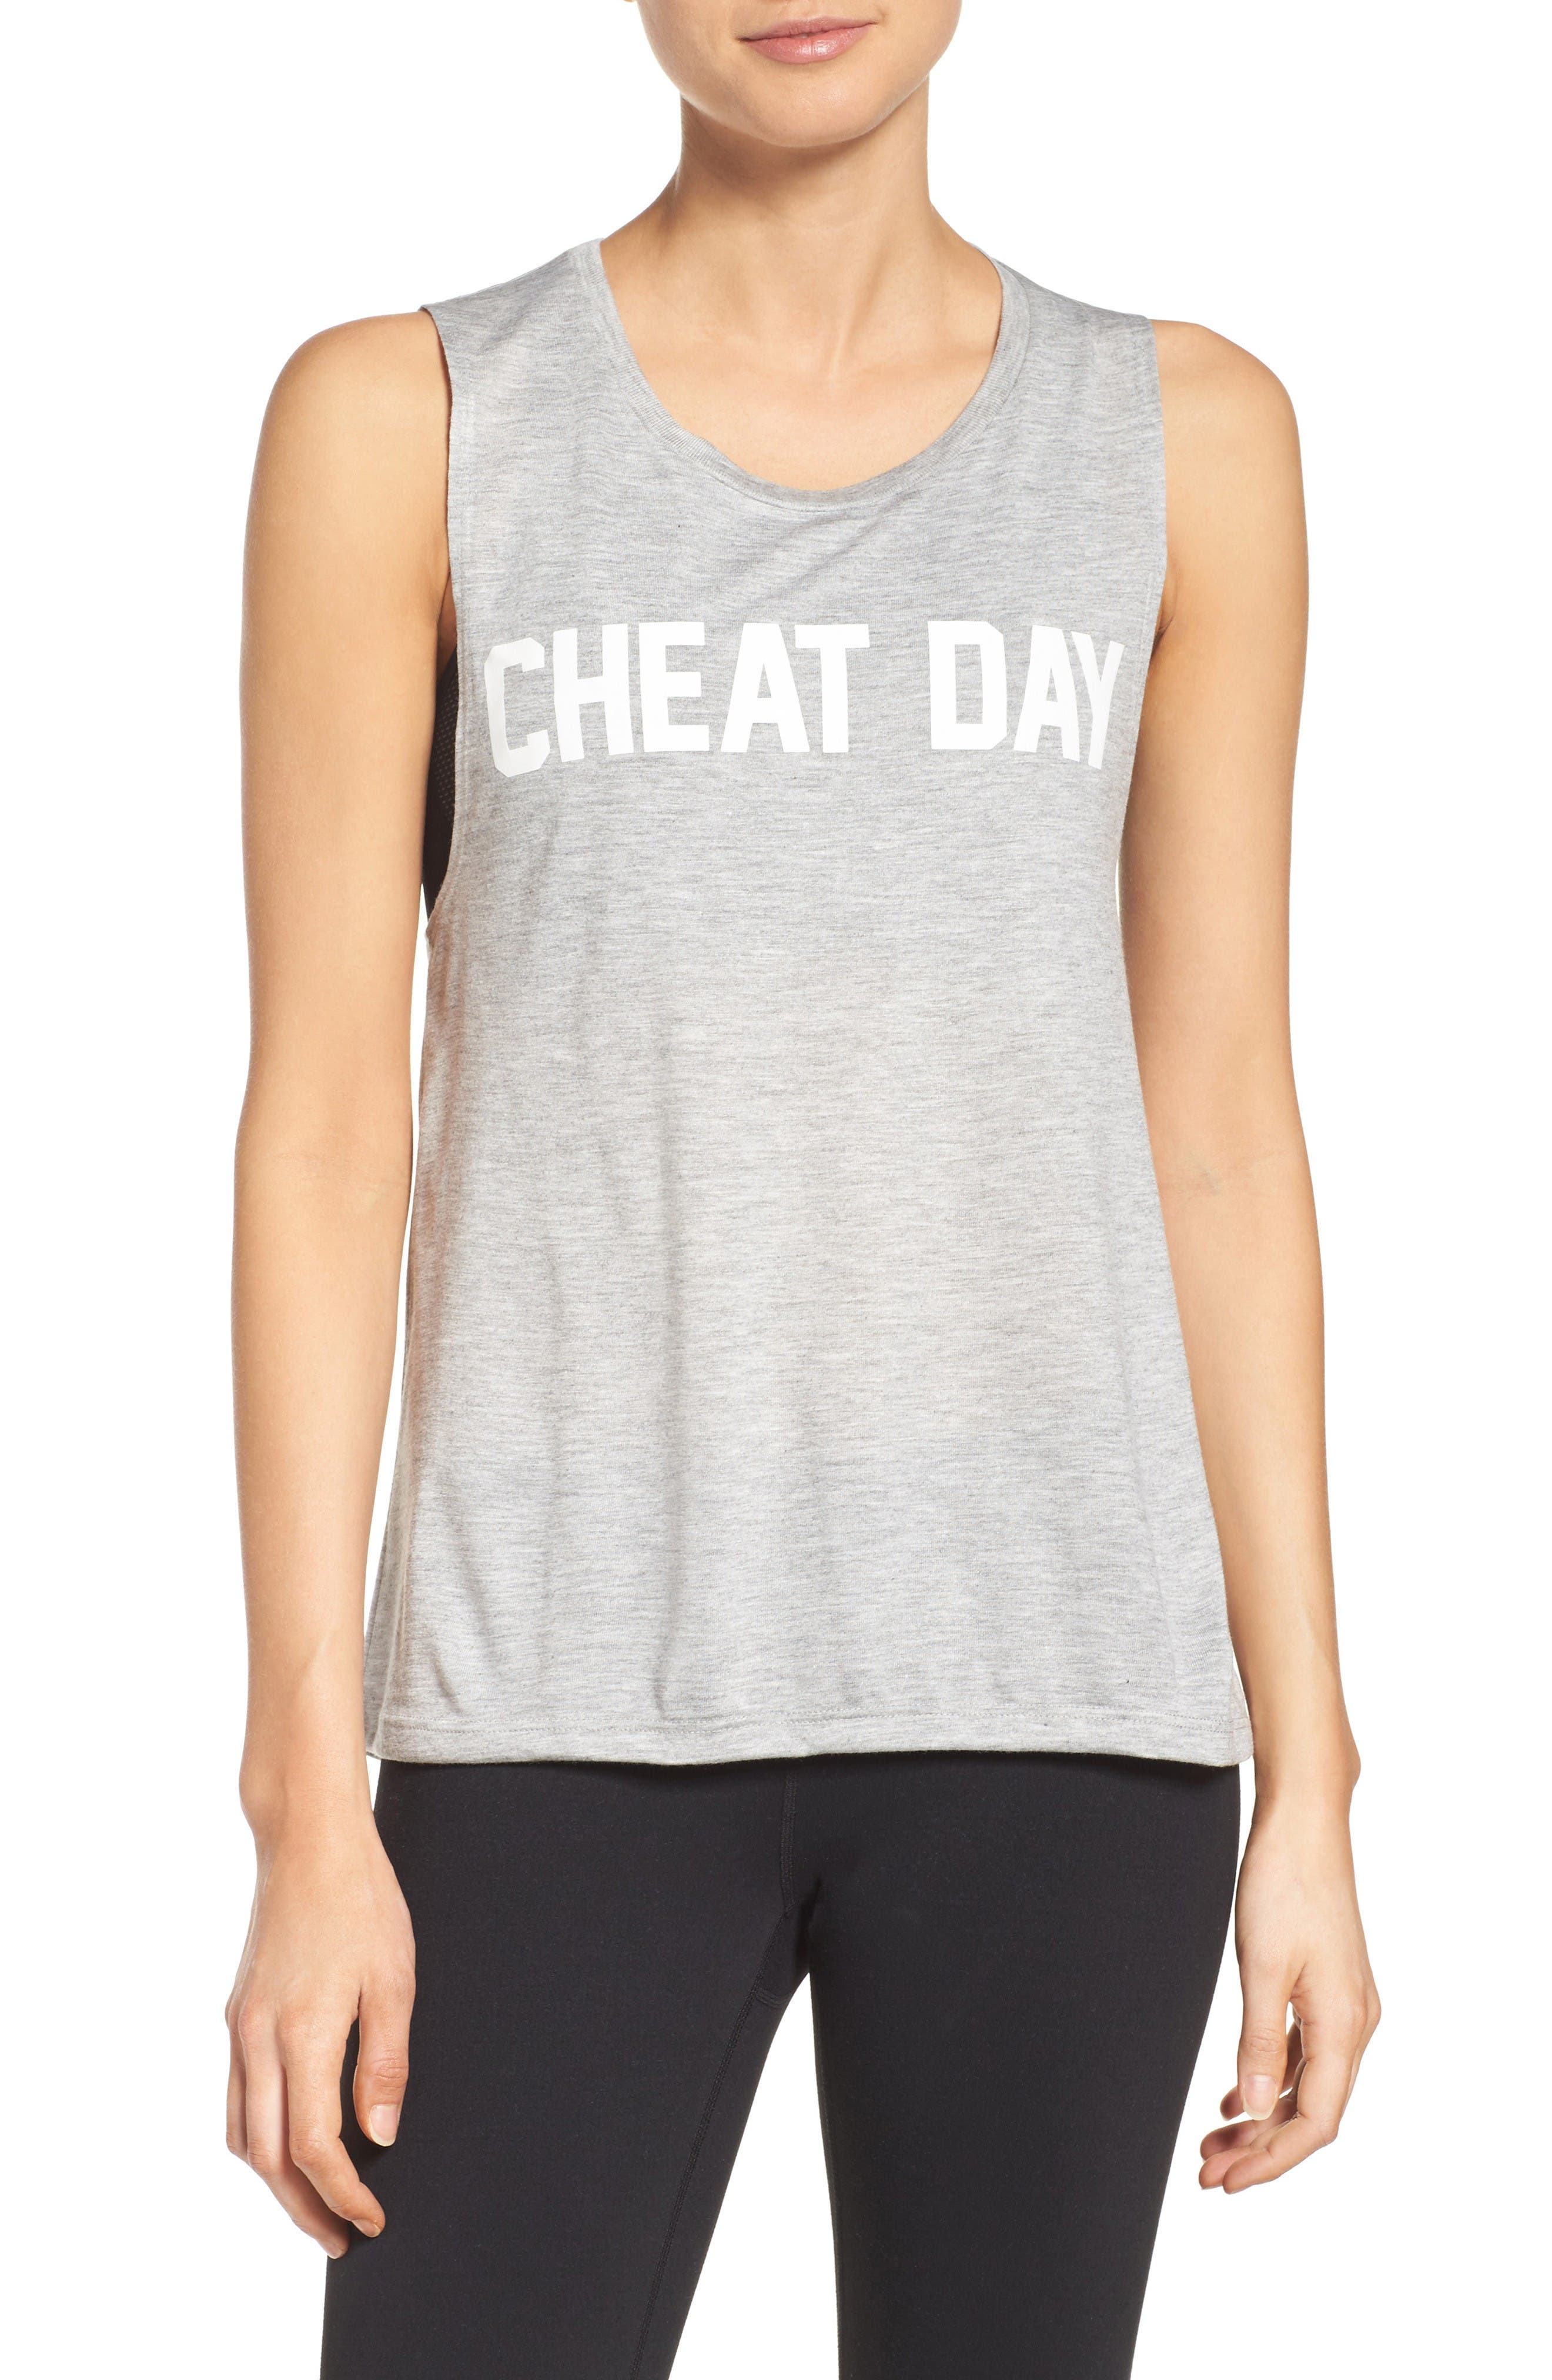 Main Image - Private Party Cheat Day Tank